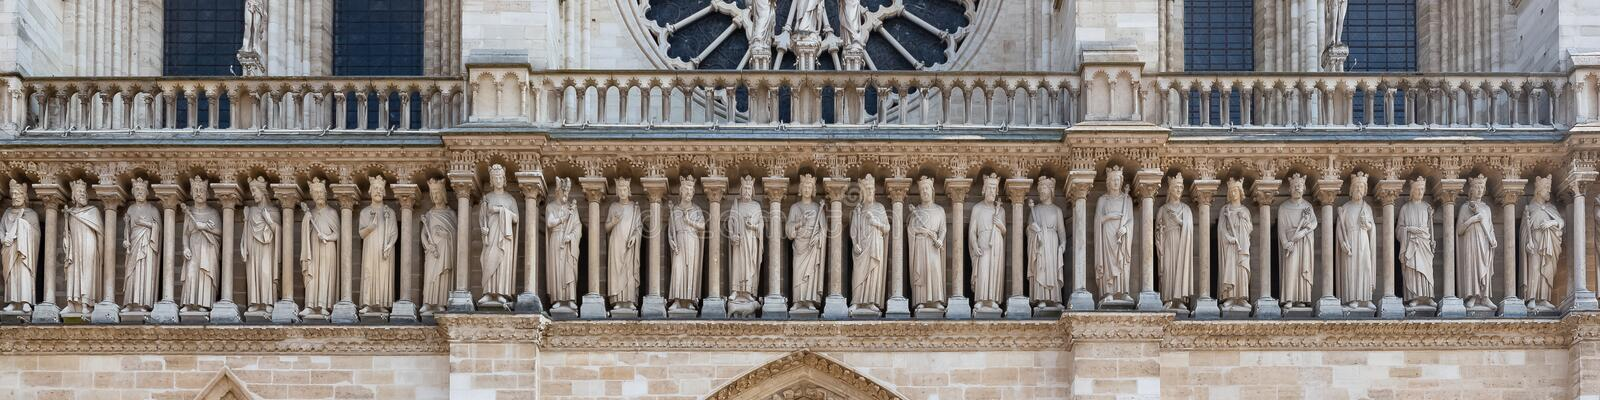 Paris, Notre-Dame cathedral, the kings gallery. Paris, Notre-Dame cathedral in the ile de la Cite, the kings gallery on the western facade royalty free stock images